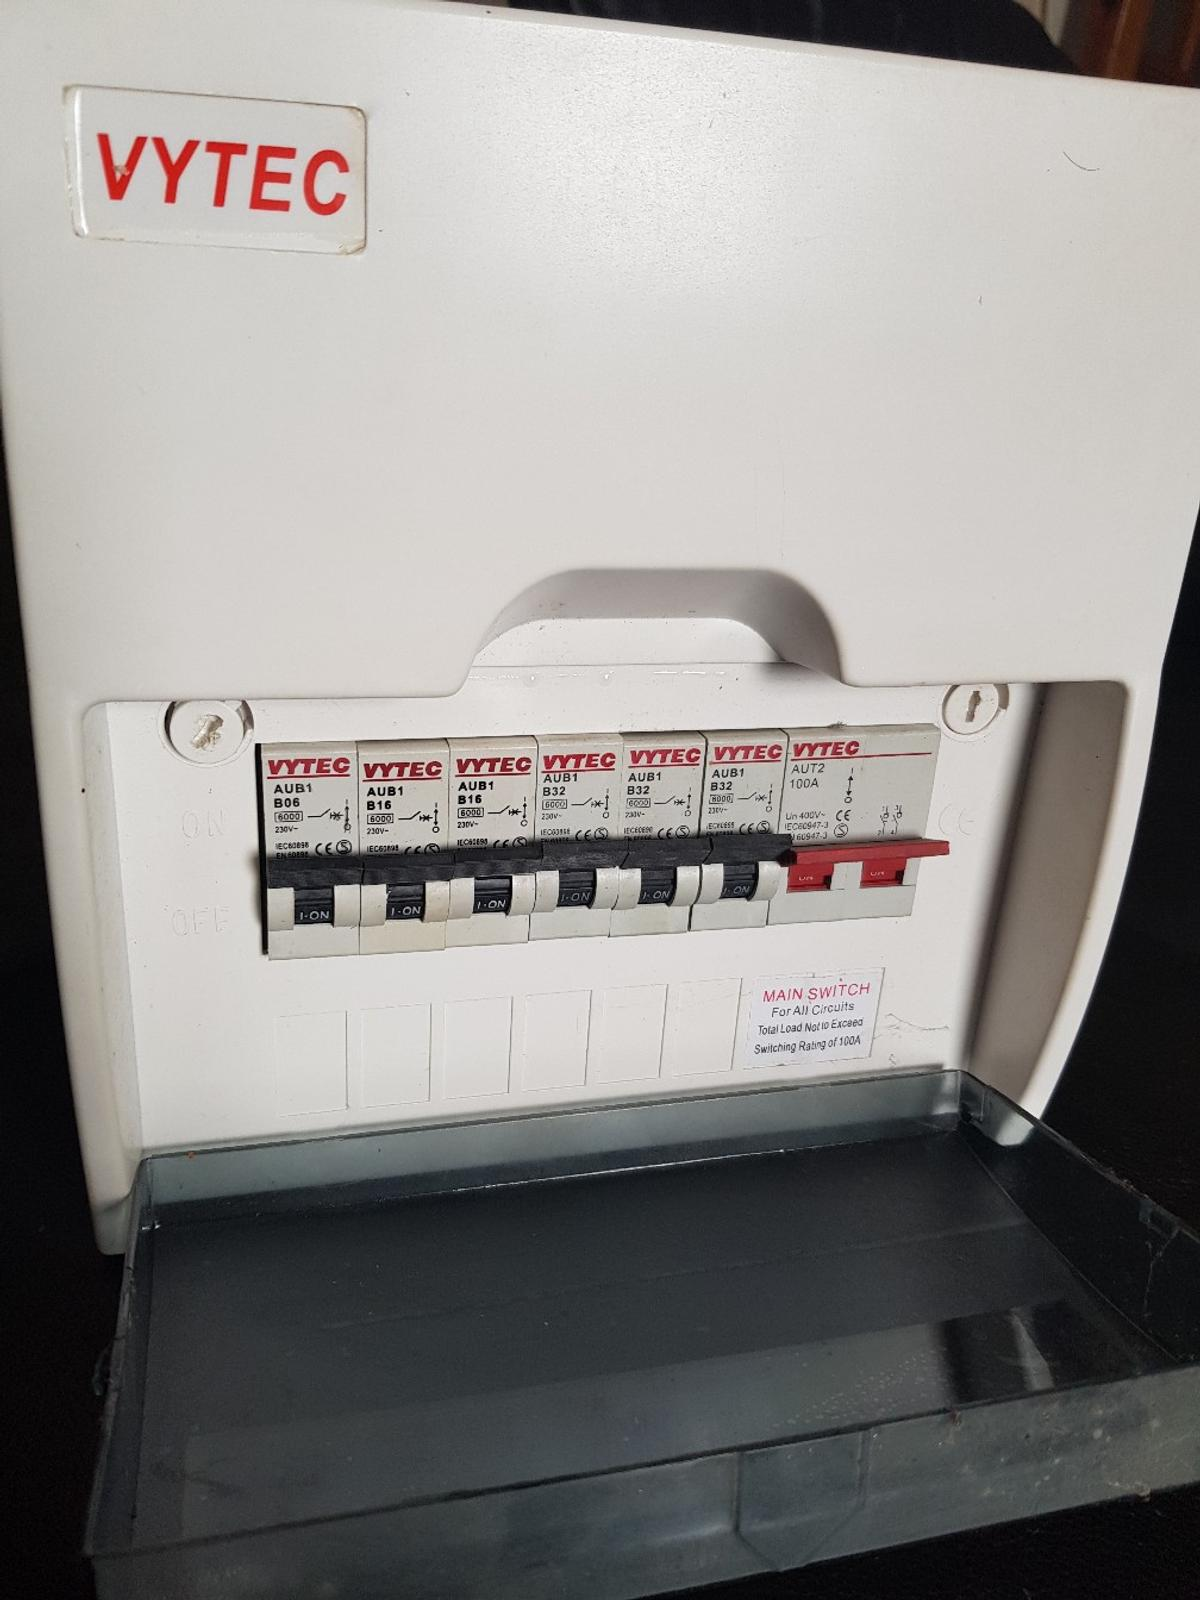 Fuse box vytec in B9 Birmingham for £25.00 for sale | Shpock Fuse Box In Fuses on switch box, transformer box, four box, case box, style box, junction box, cover box, layout for hexagonal box, ground box, relay box, power box, meter box, breaker box, circuit box, tube box, clip box, dark box, watch dogs box, generator box, the last of us box,